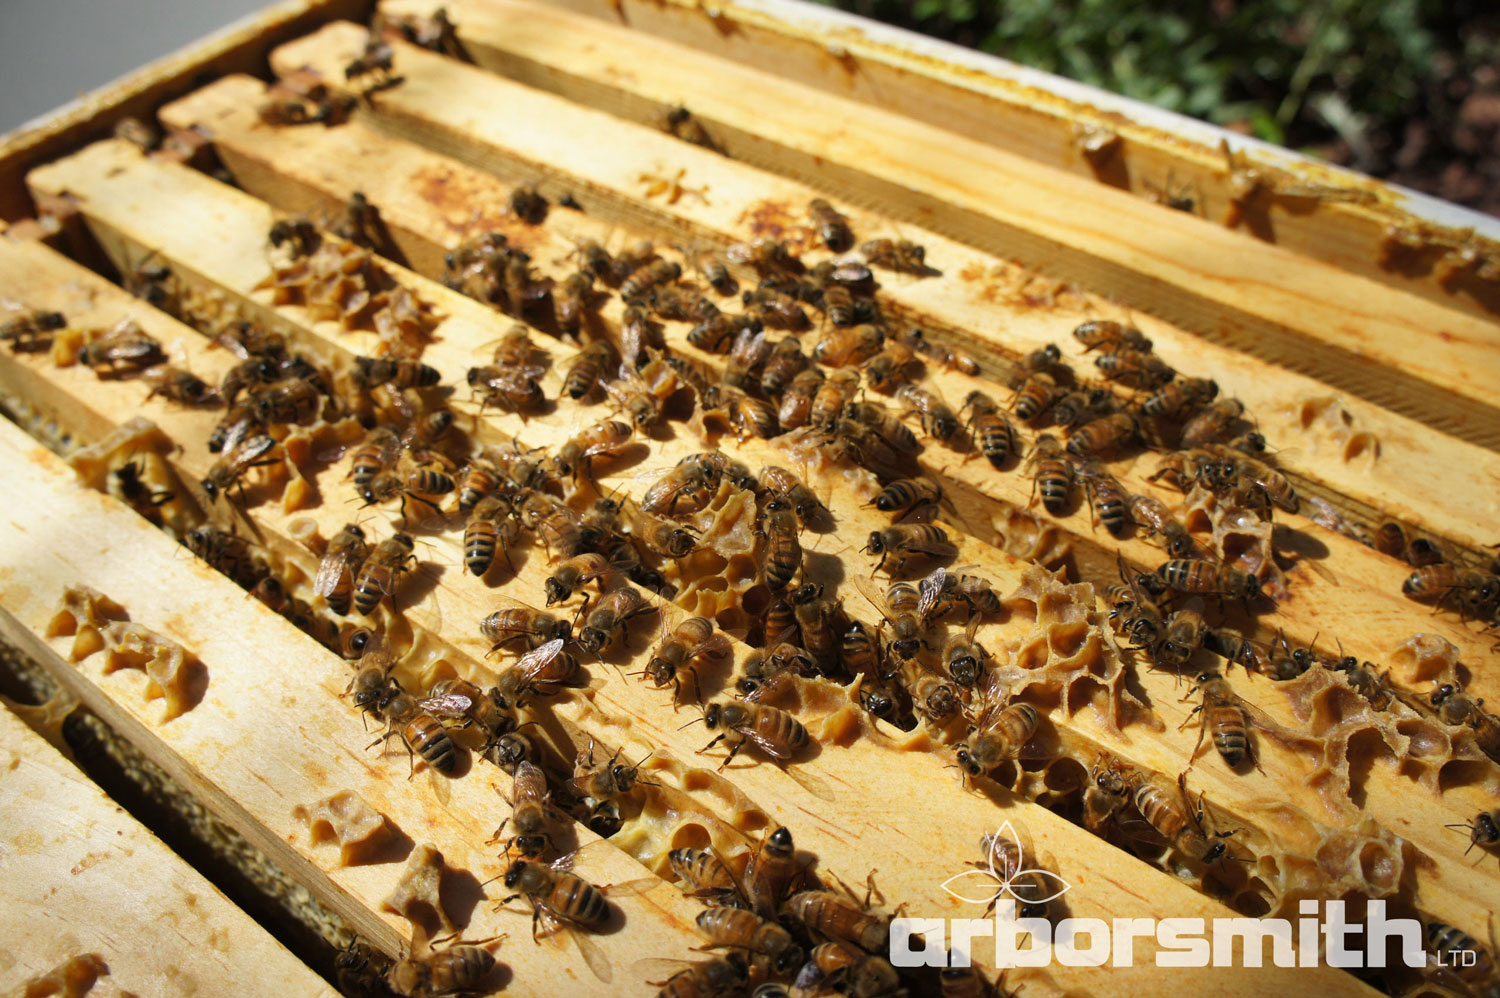 Honeybee hive.  Photos by Lesley Bruce Smith